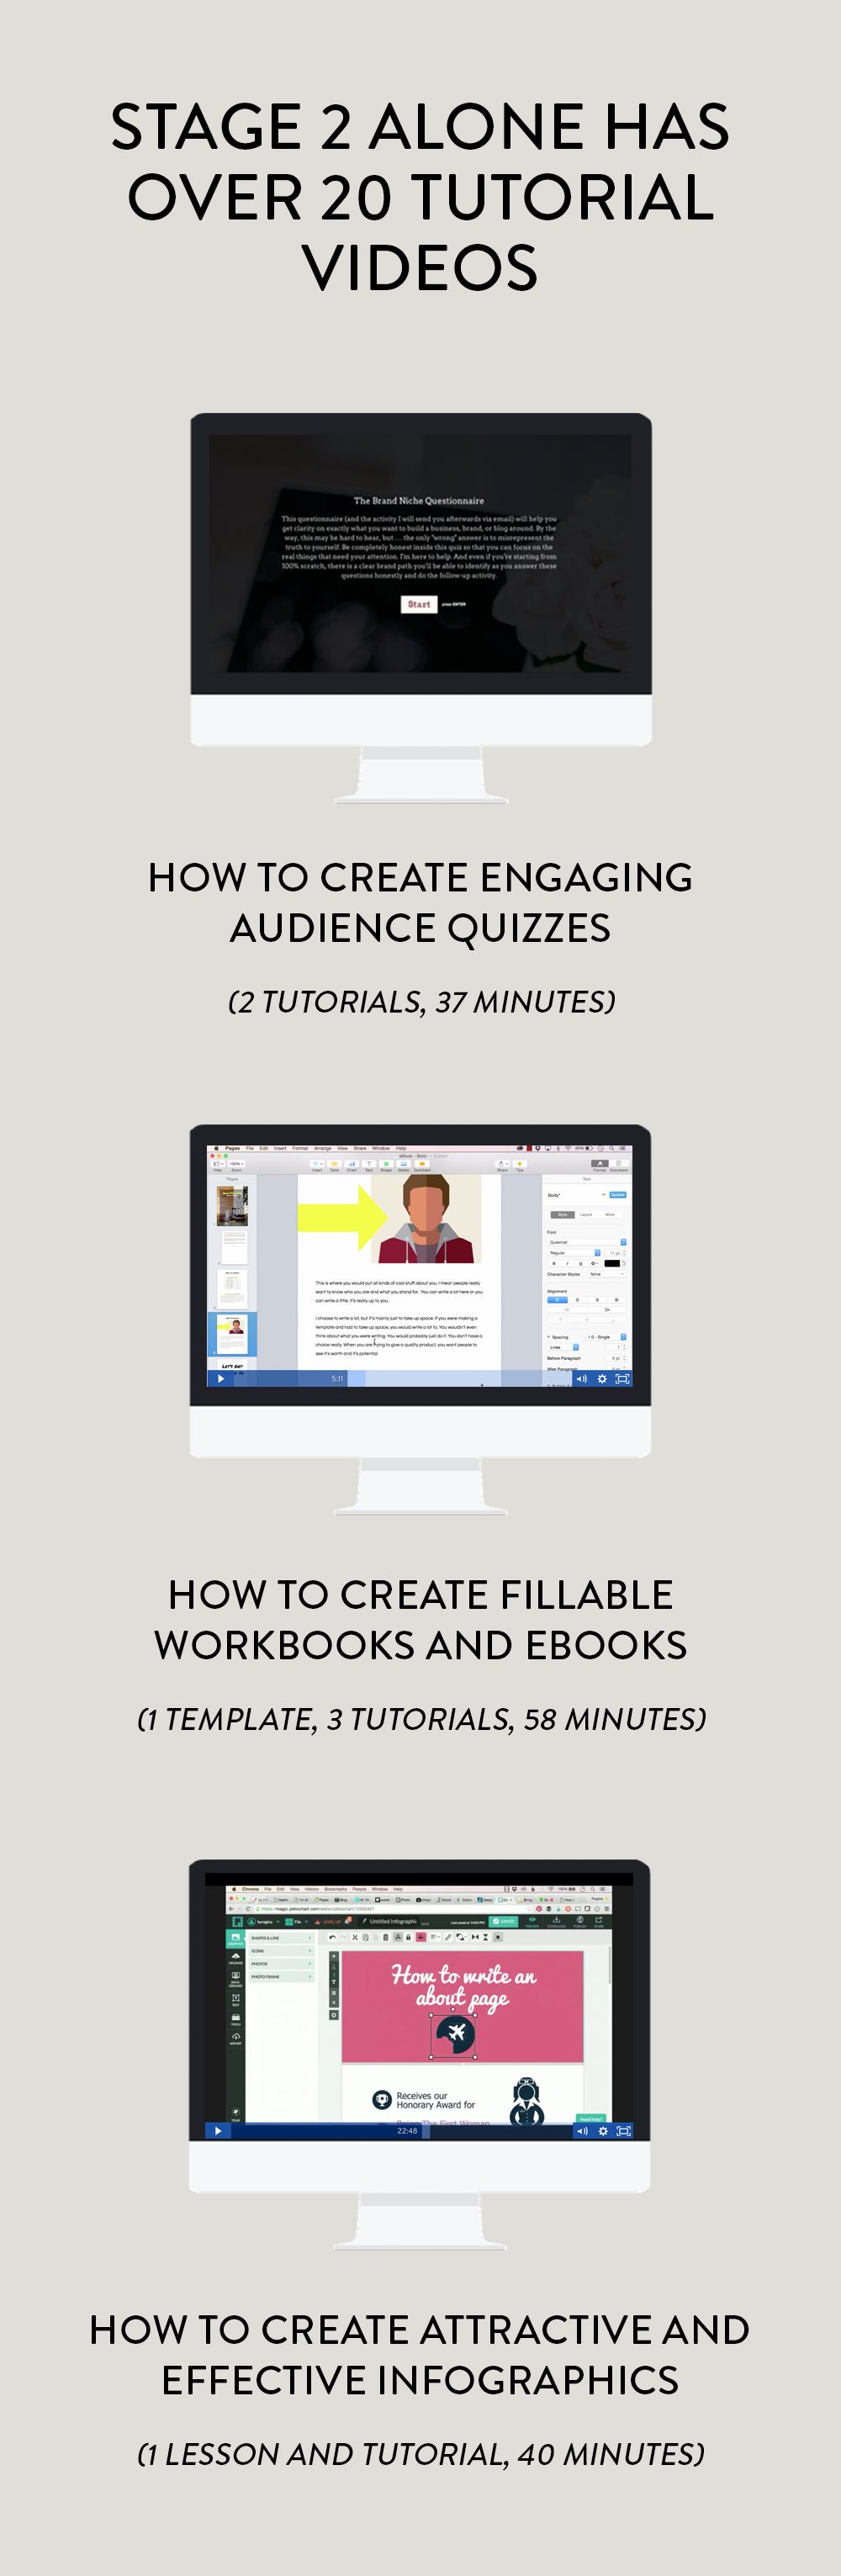 The tutorial videos in Build Your Information Empire actually take you step-by-step through how to create, launch, and grow your products, email list, funnels, and more.